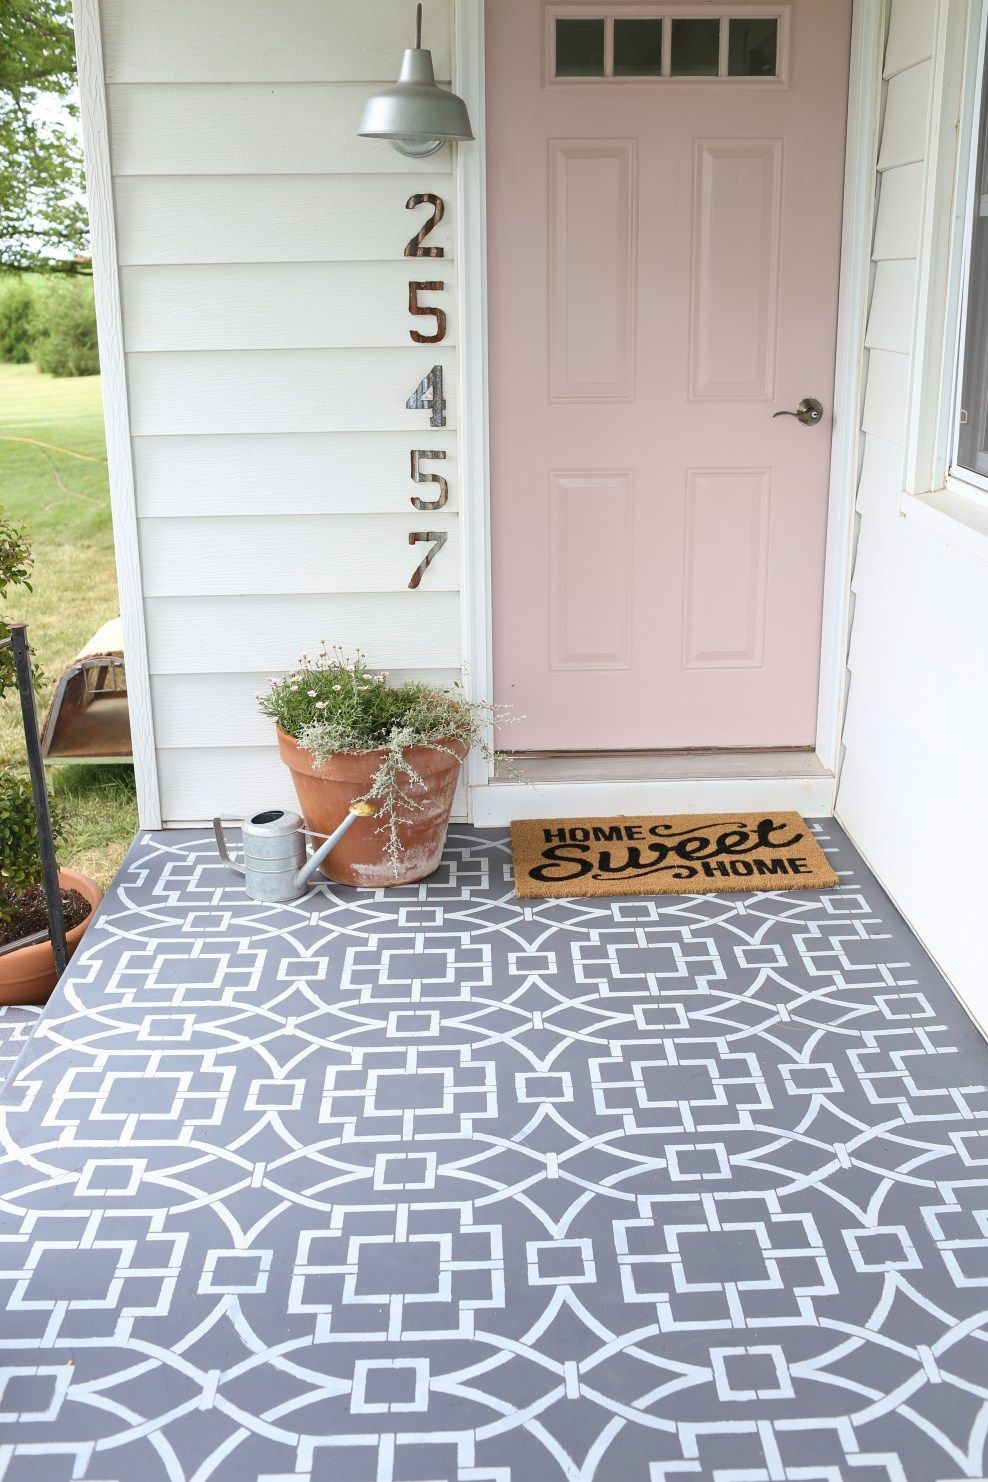 Charmant Painted Cement Floor Using A Stencil To Create A Cement Tile Look.